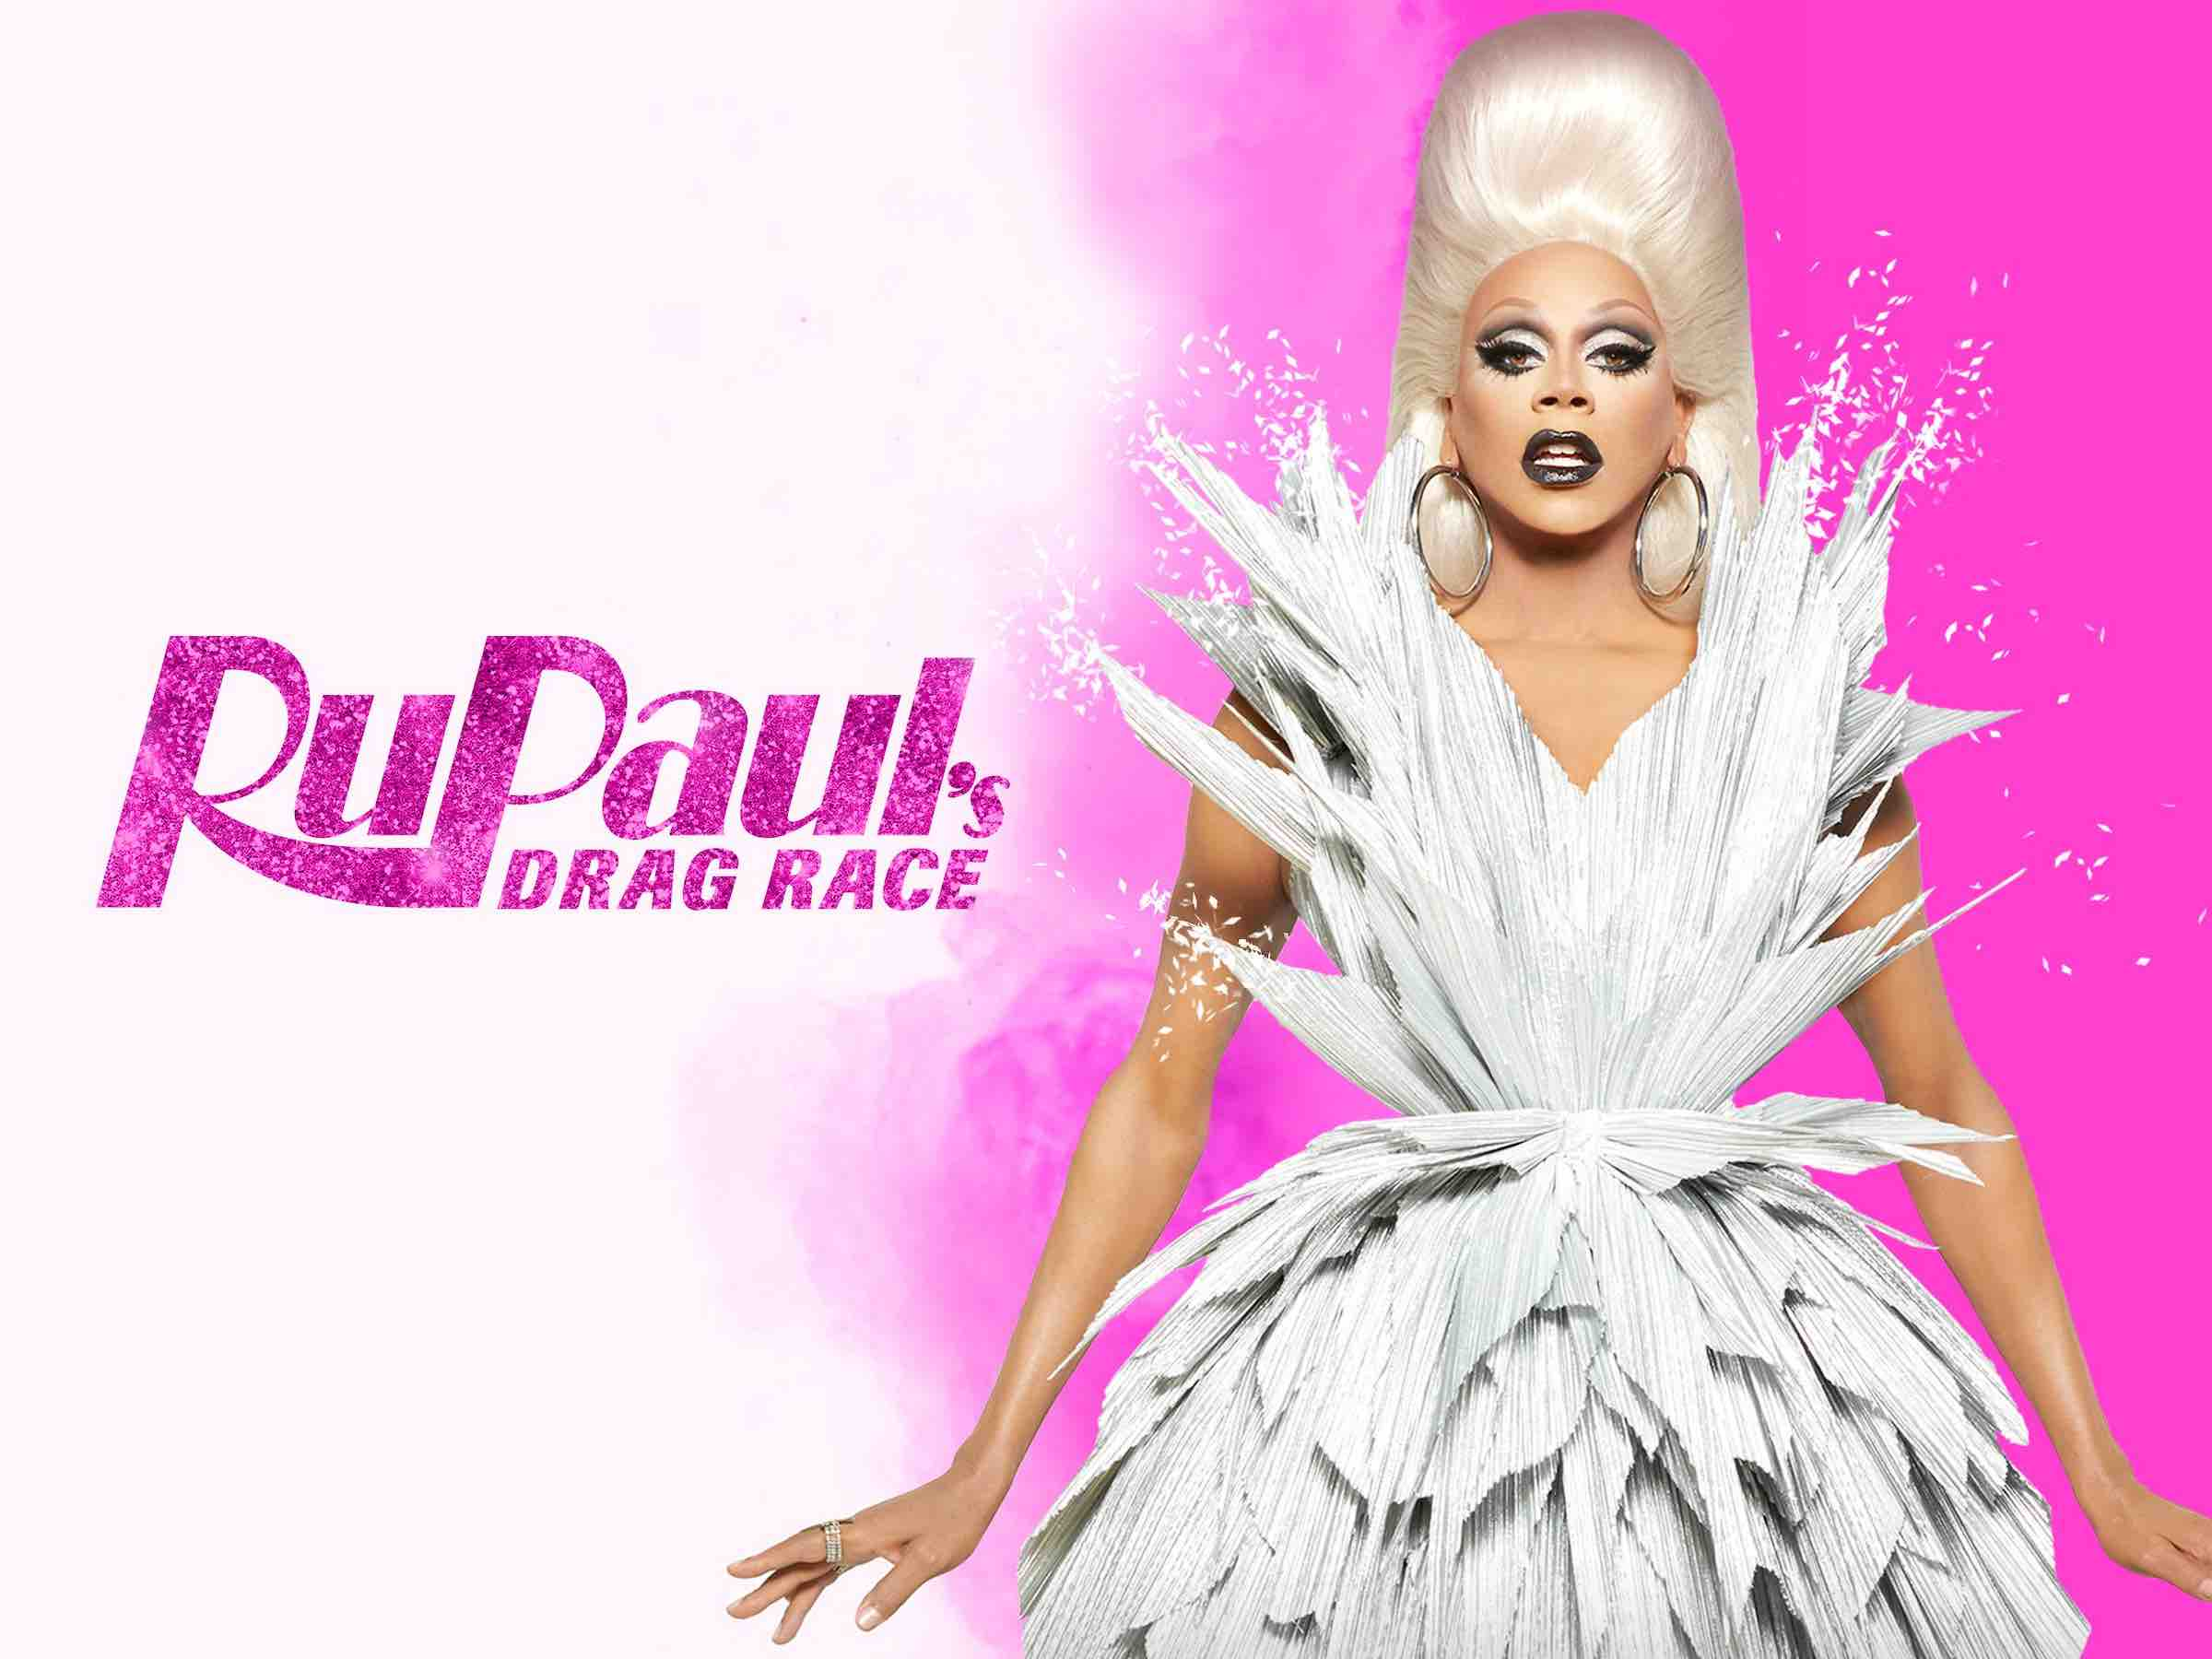 A shortlist of queens from all eleven seasons of has been compiled. Vote now for 'RuPaul's Drag Race' Queen of Queens in the Bingewatch Awards!